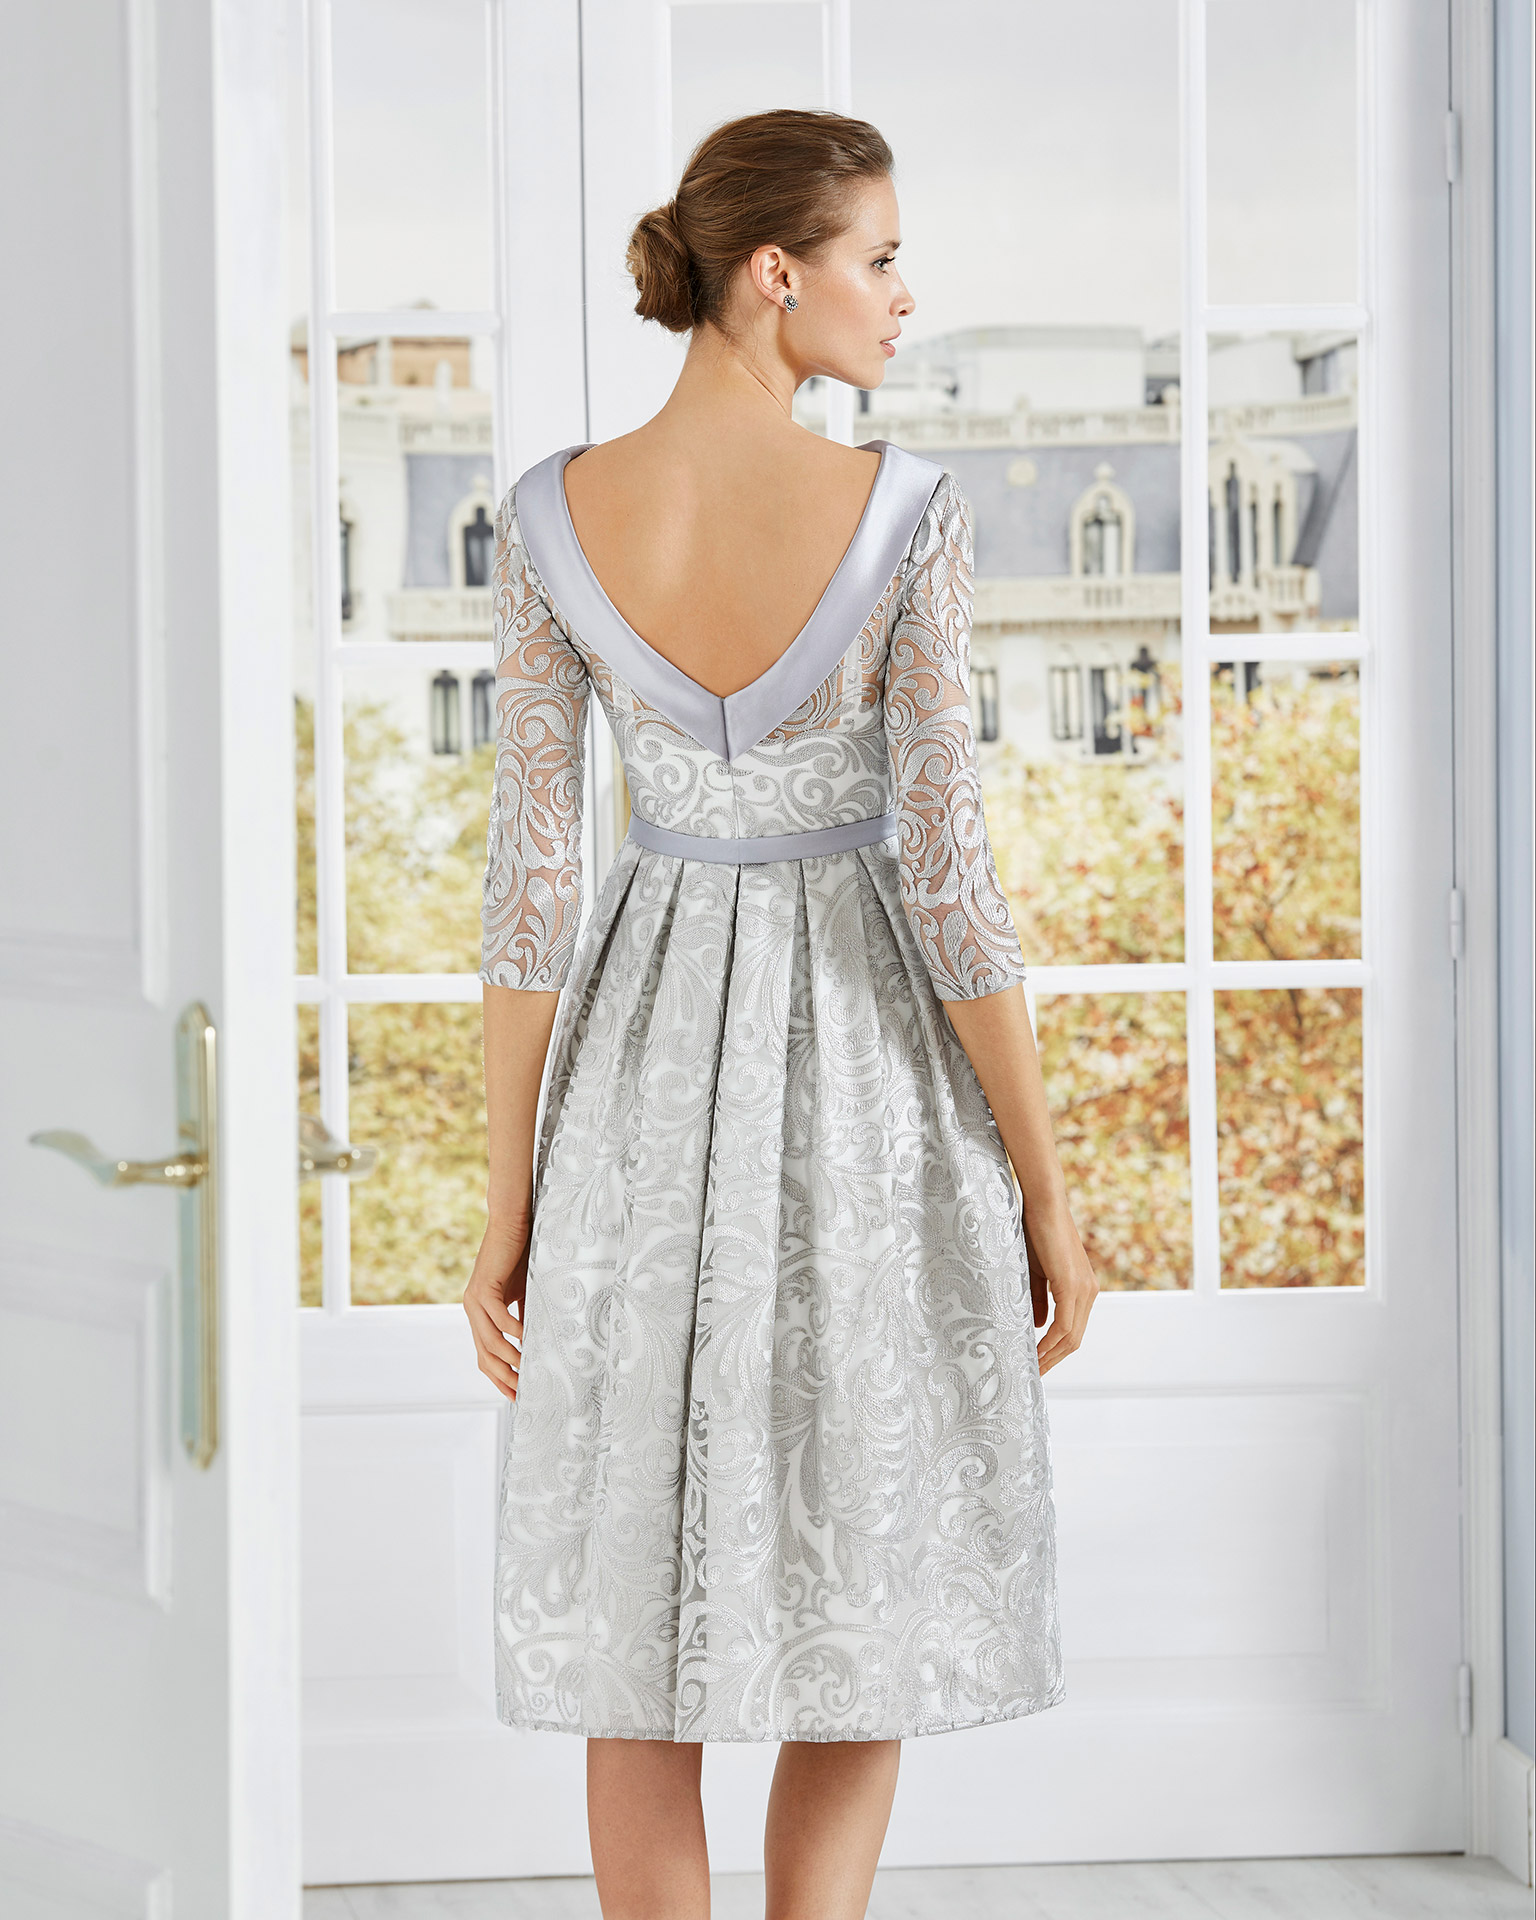 Short lace cocktail dress. Bateau neckline with three-quarter lace sleeves and bow at the waist. 2020 COUTURE CLUB Collection.